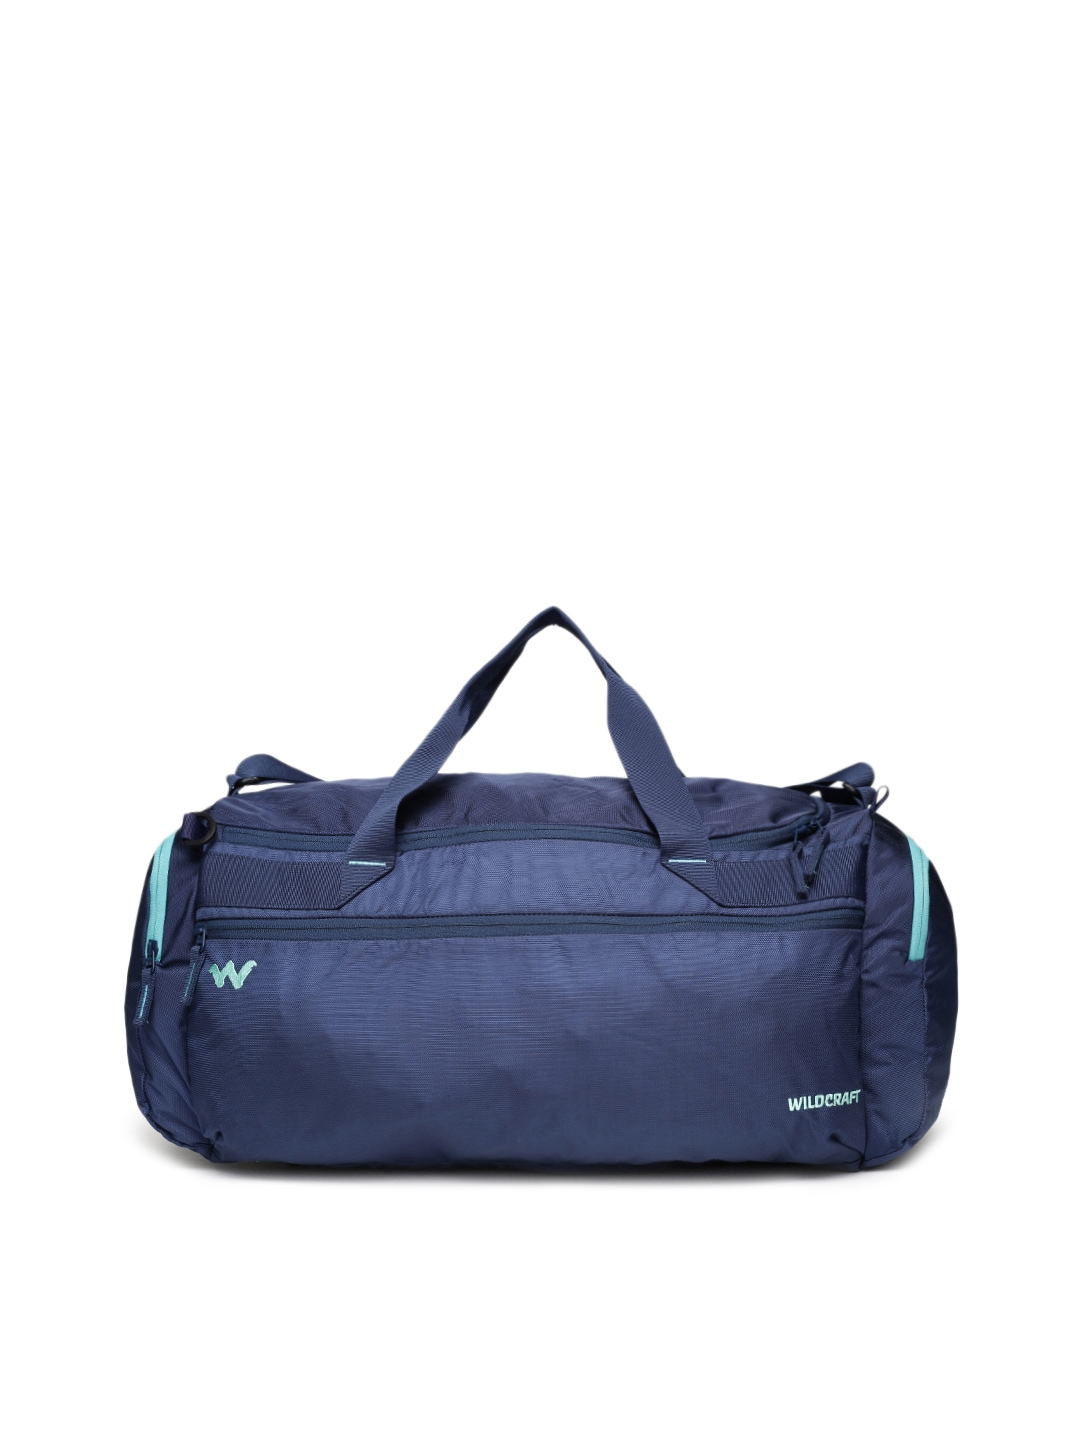 54da608aa7 Men Wildcraft Accessories Duffle Bags - Buy Men Wildcraft Accessories Duffle  Bags online in India